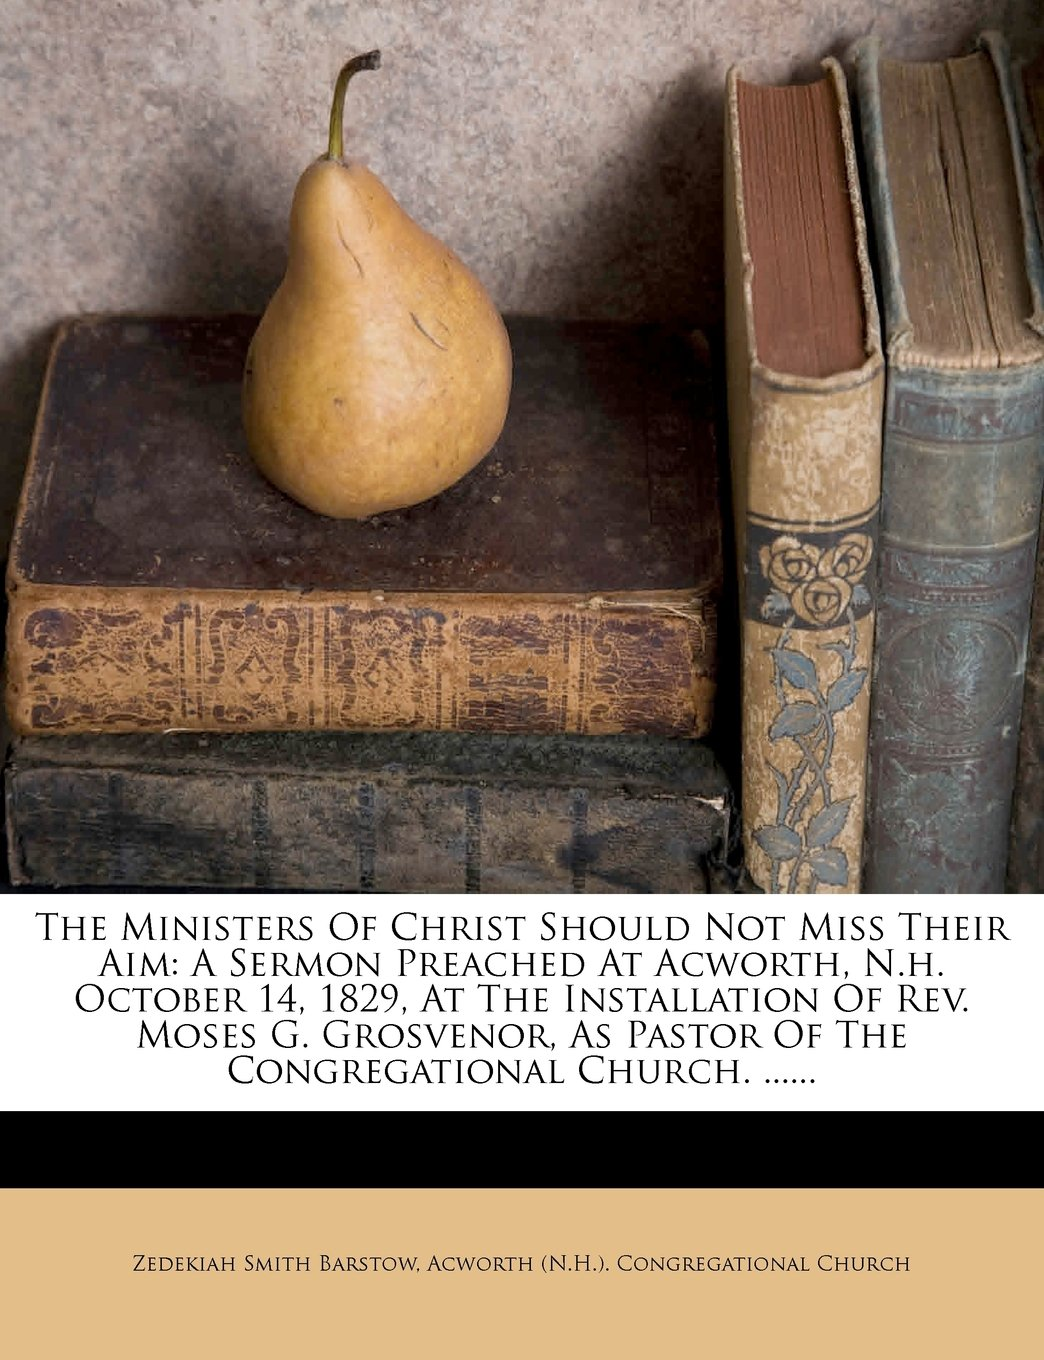 Download The Ministers Of Christ Should Not Miss Their Aim: A Sermon Preached At Acworth, N.h. October 14, 1829, At The Installation Of Rev. Moses G. Grosvenor, As Pastor Of The Congregational Church. ...... pdf